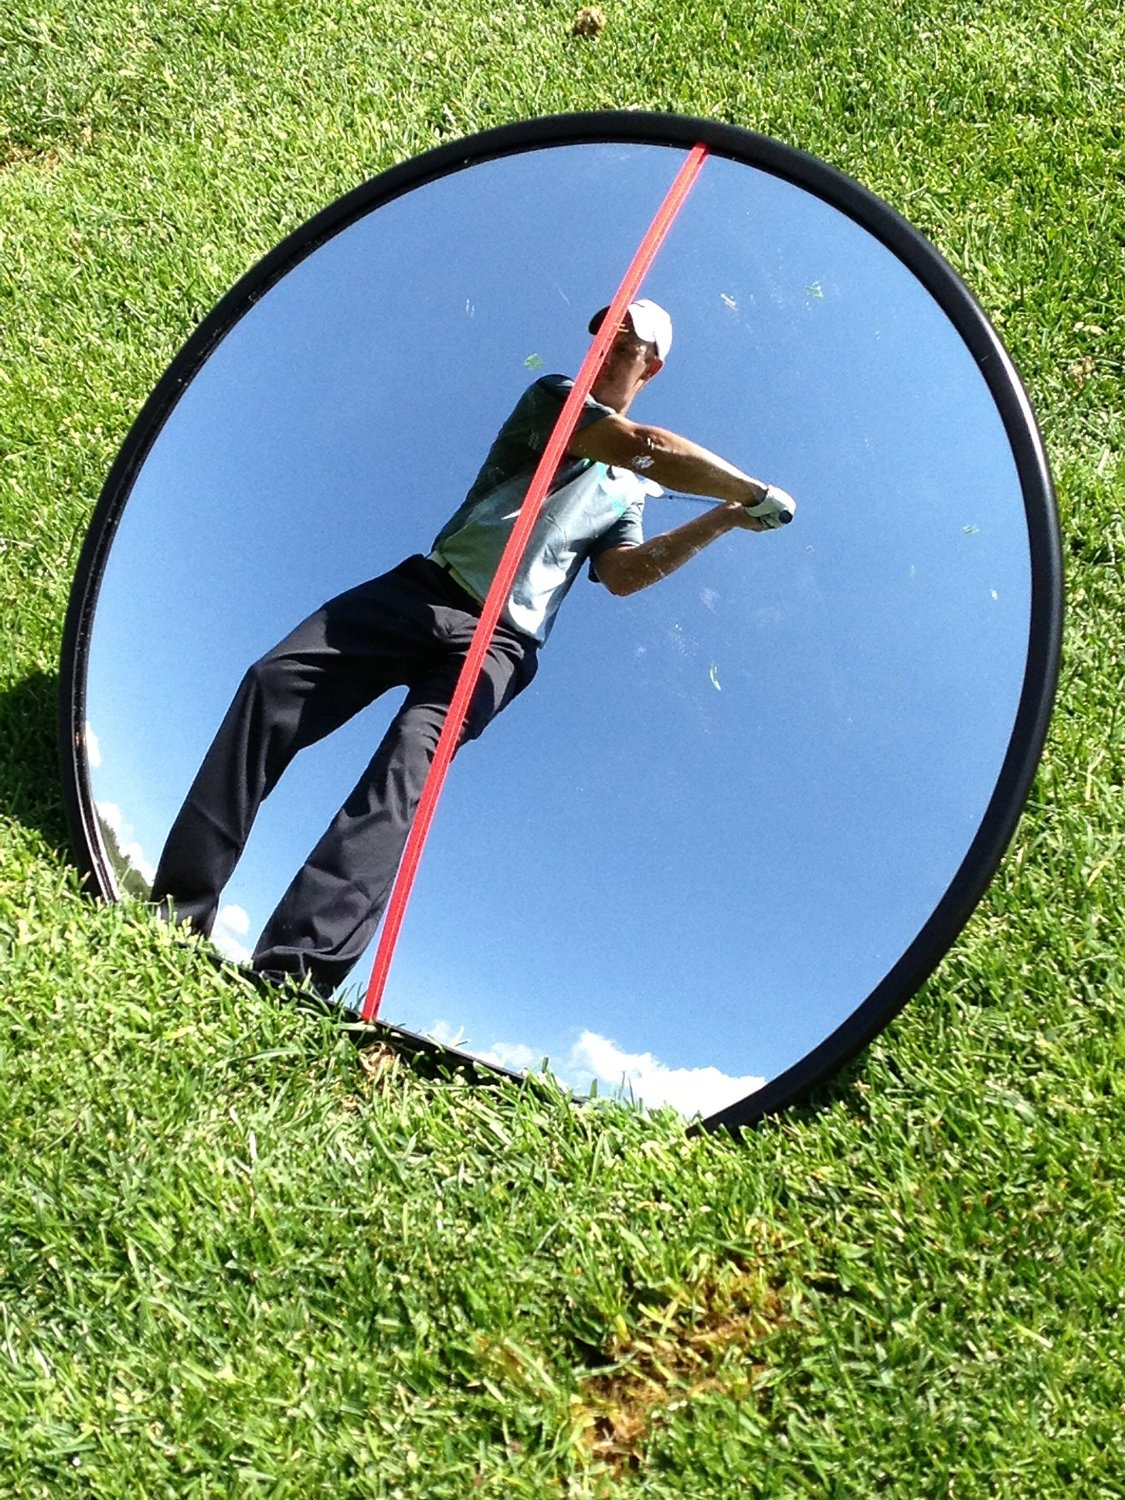 Eyeline Golf 360 Degrees Mirror for Putting and Full Swing